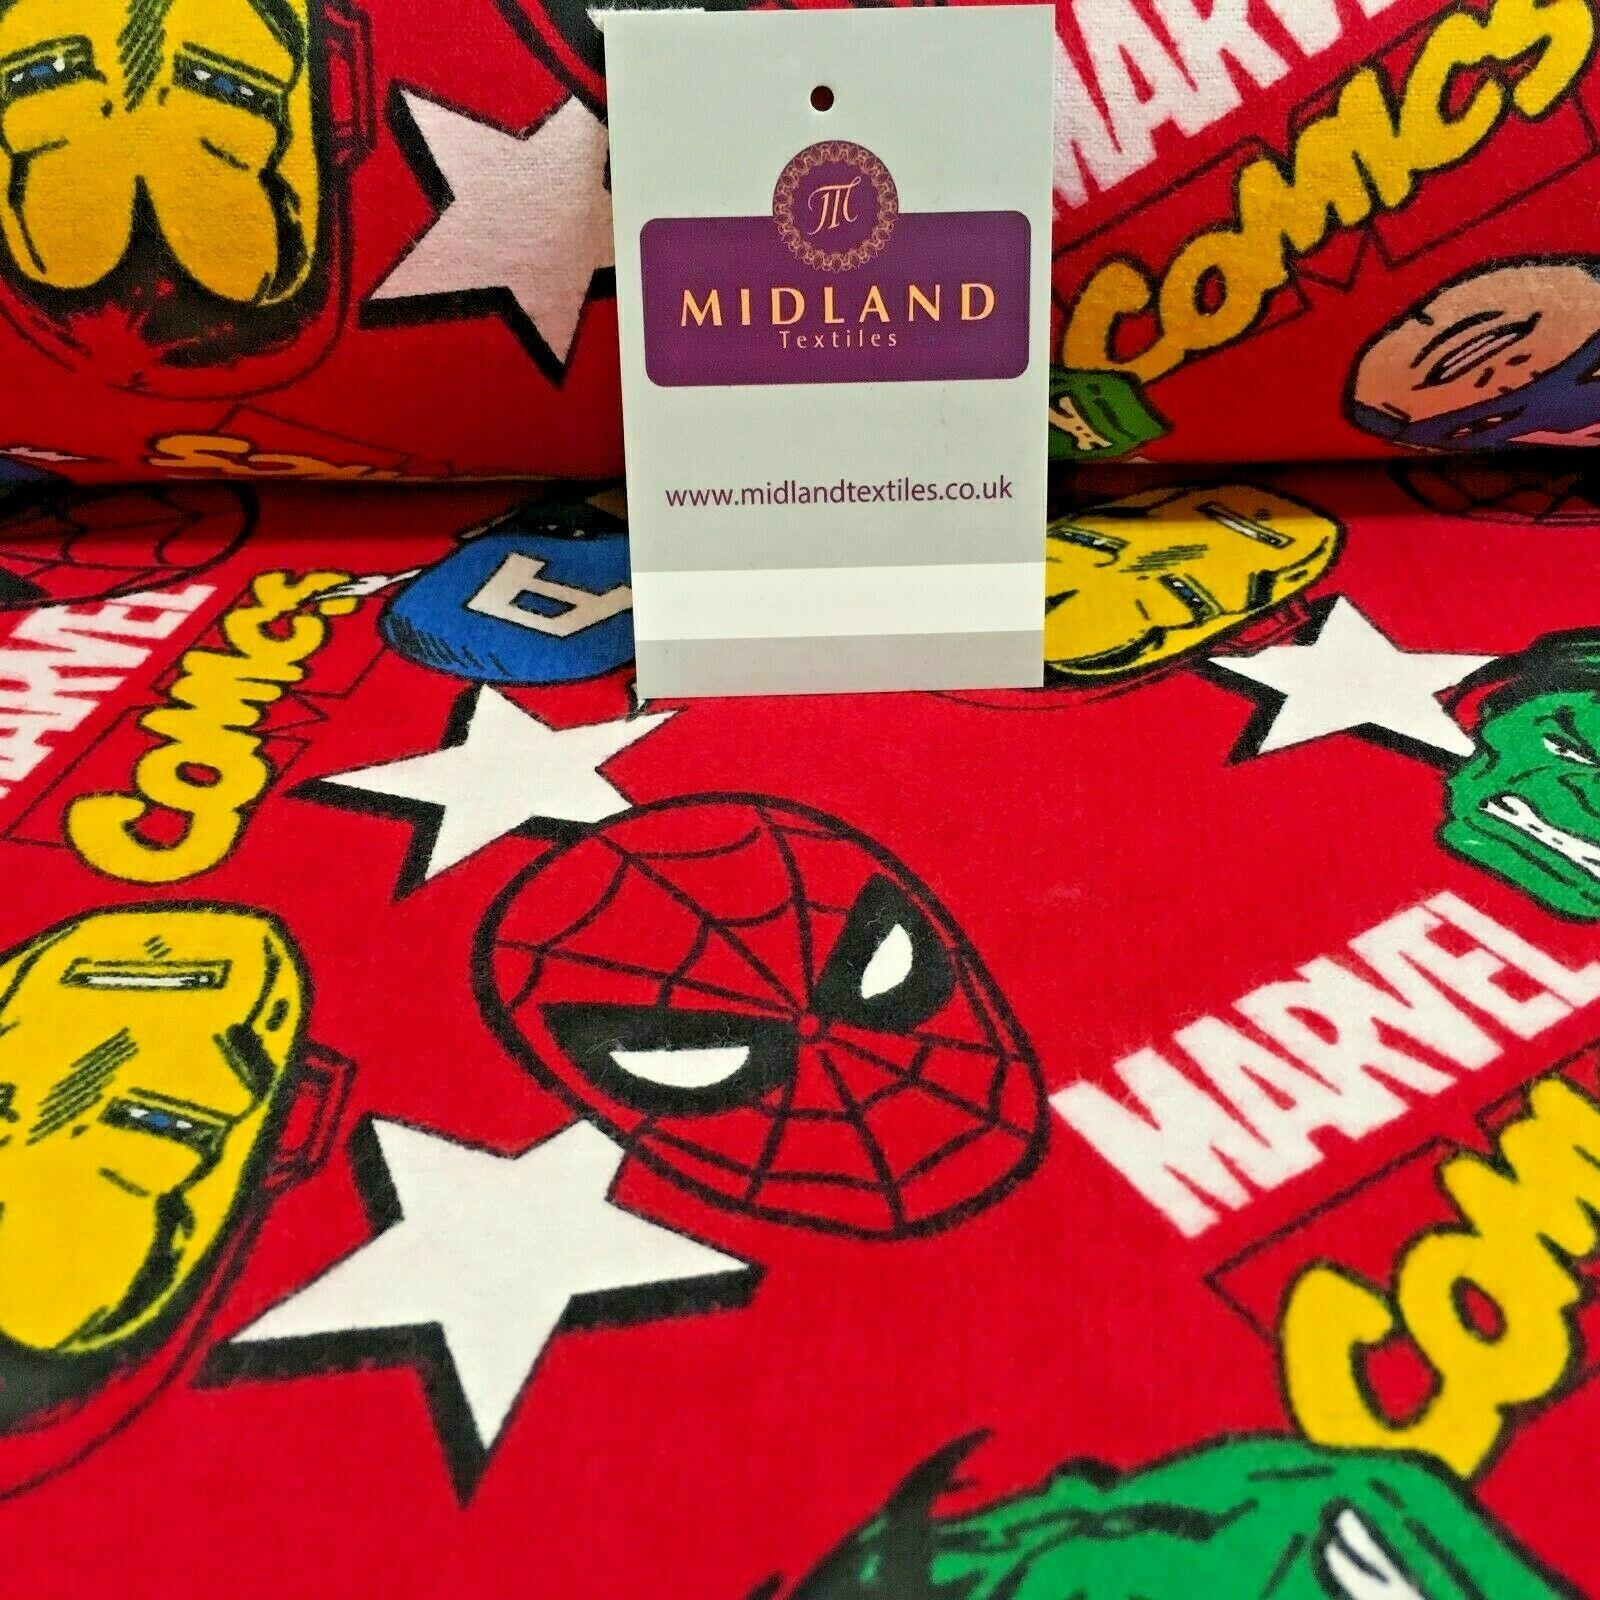 Red Marvel Comics Cotton Winceyette Soft Brushed Flannel Fabric 110cm MK1229-3